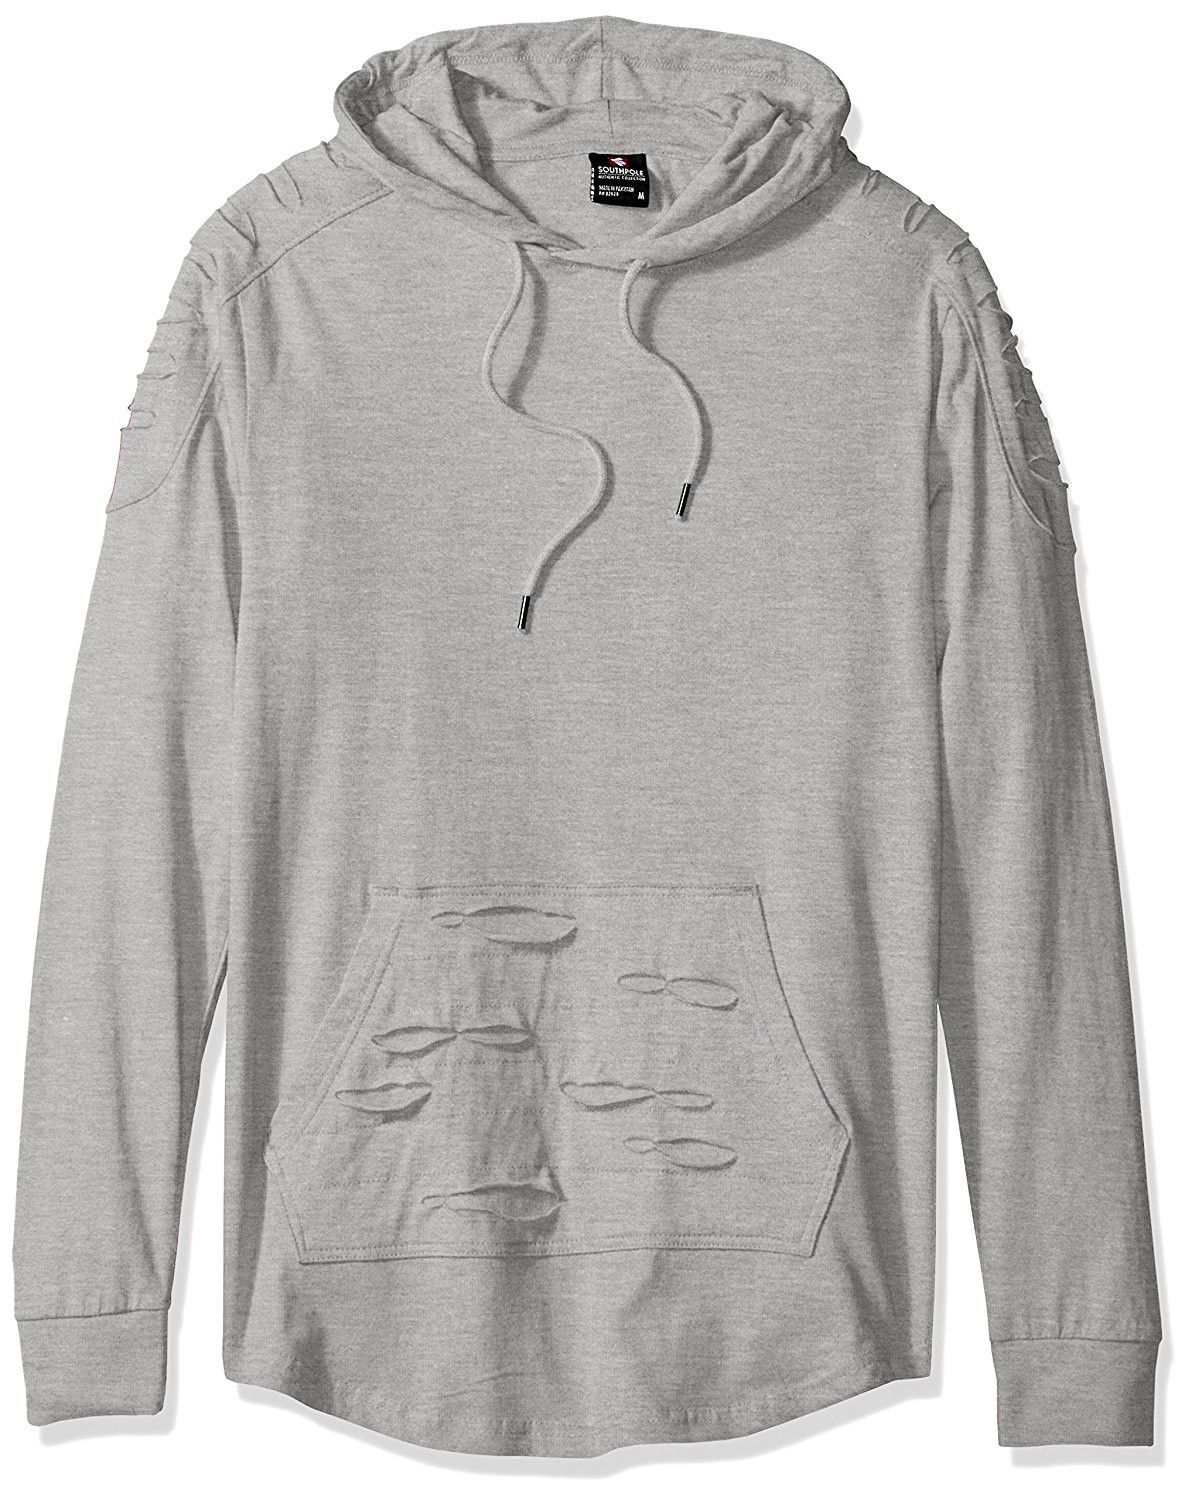 9b34baf9273beb Men's Long Sleeve Hooded Ripped and Repaired Scallop Tee With Kangaroo  Pocket - Heather Grey - CB12M4DNHGL,Men's Clothing, T-Shirts & Tanks, T- Shirts #men ...